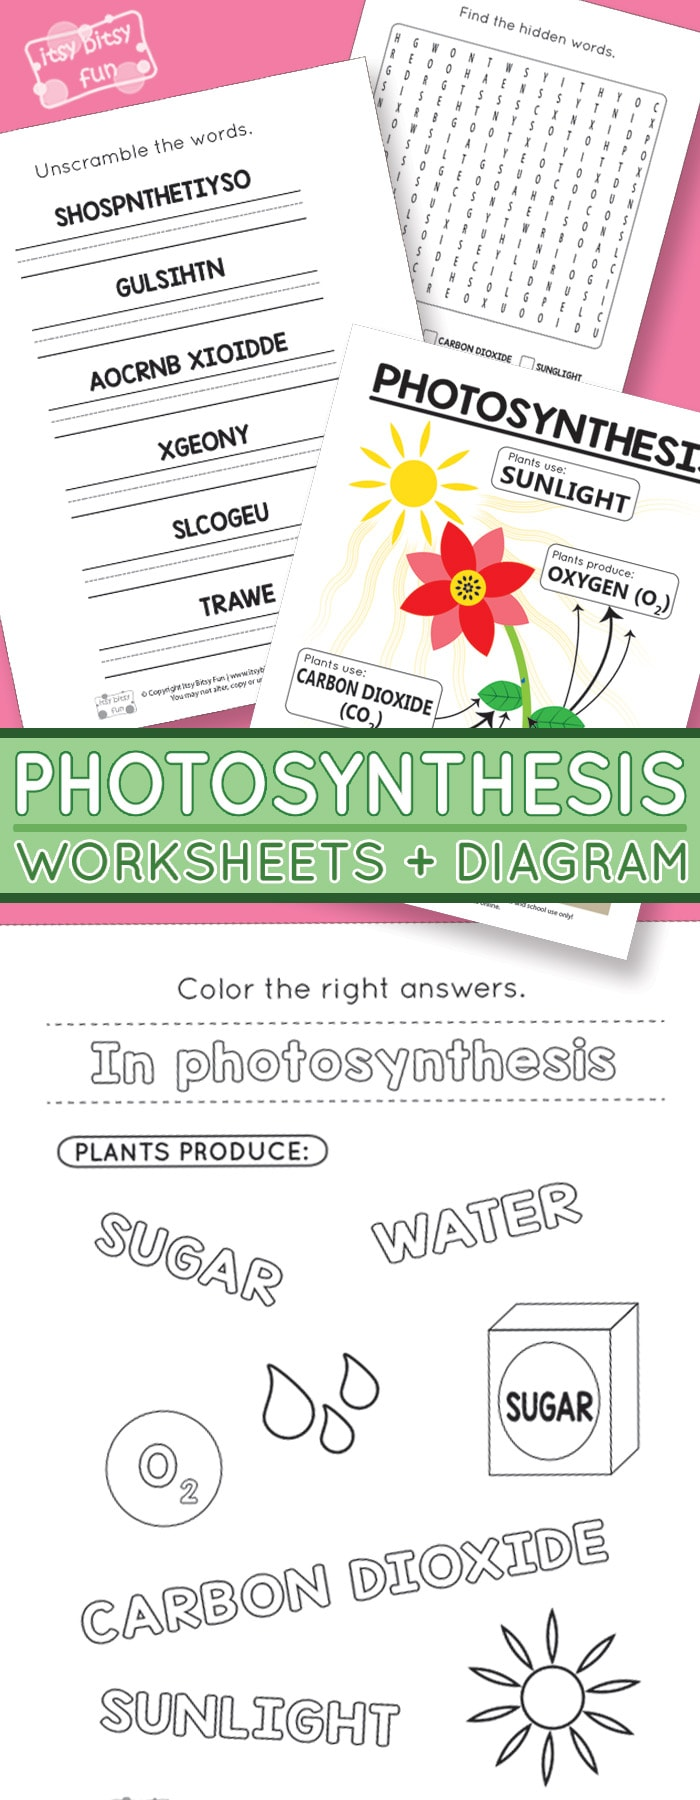 Worksheets Photosynthesis For Kids Worksheets photosynthesis worksheets for kids itsy bitsy fun with diagrams preschoolworksheets 1stgradeworksheets printableworksheets